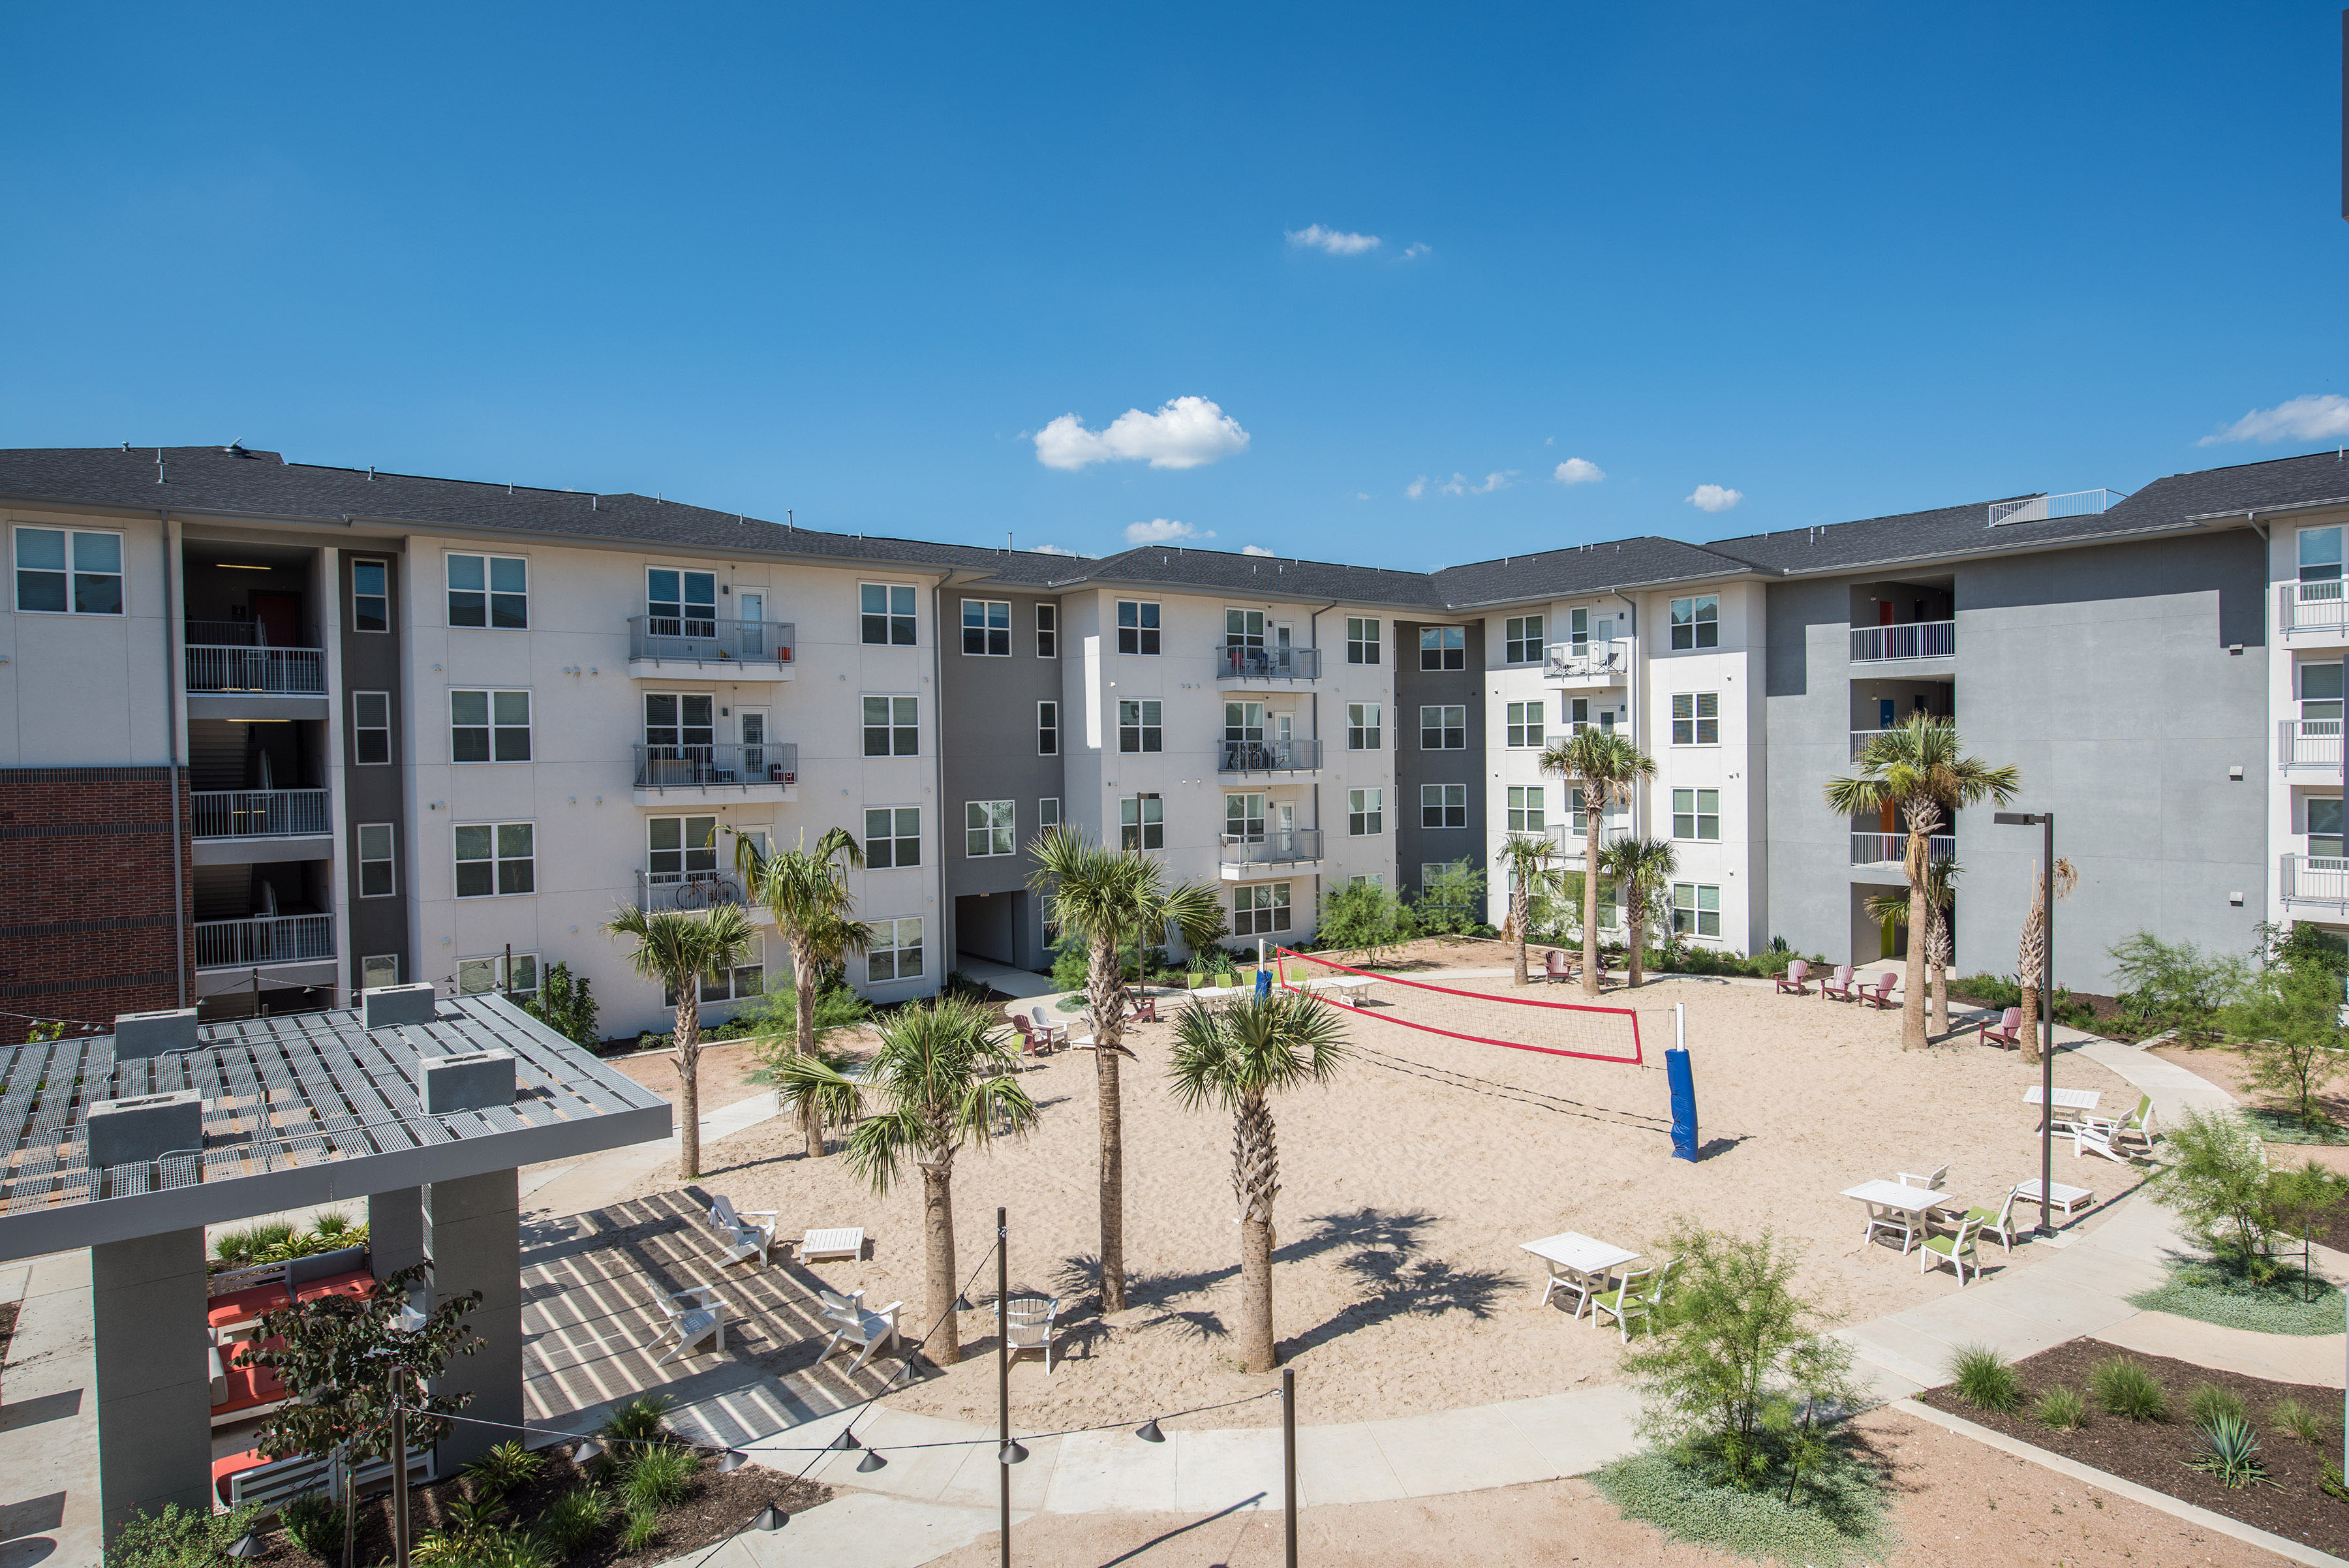 Luxx Student Housing for rent